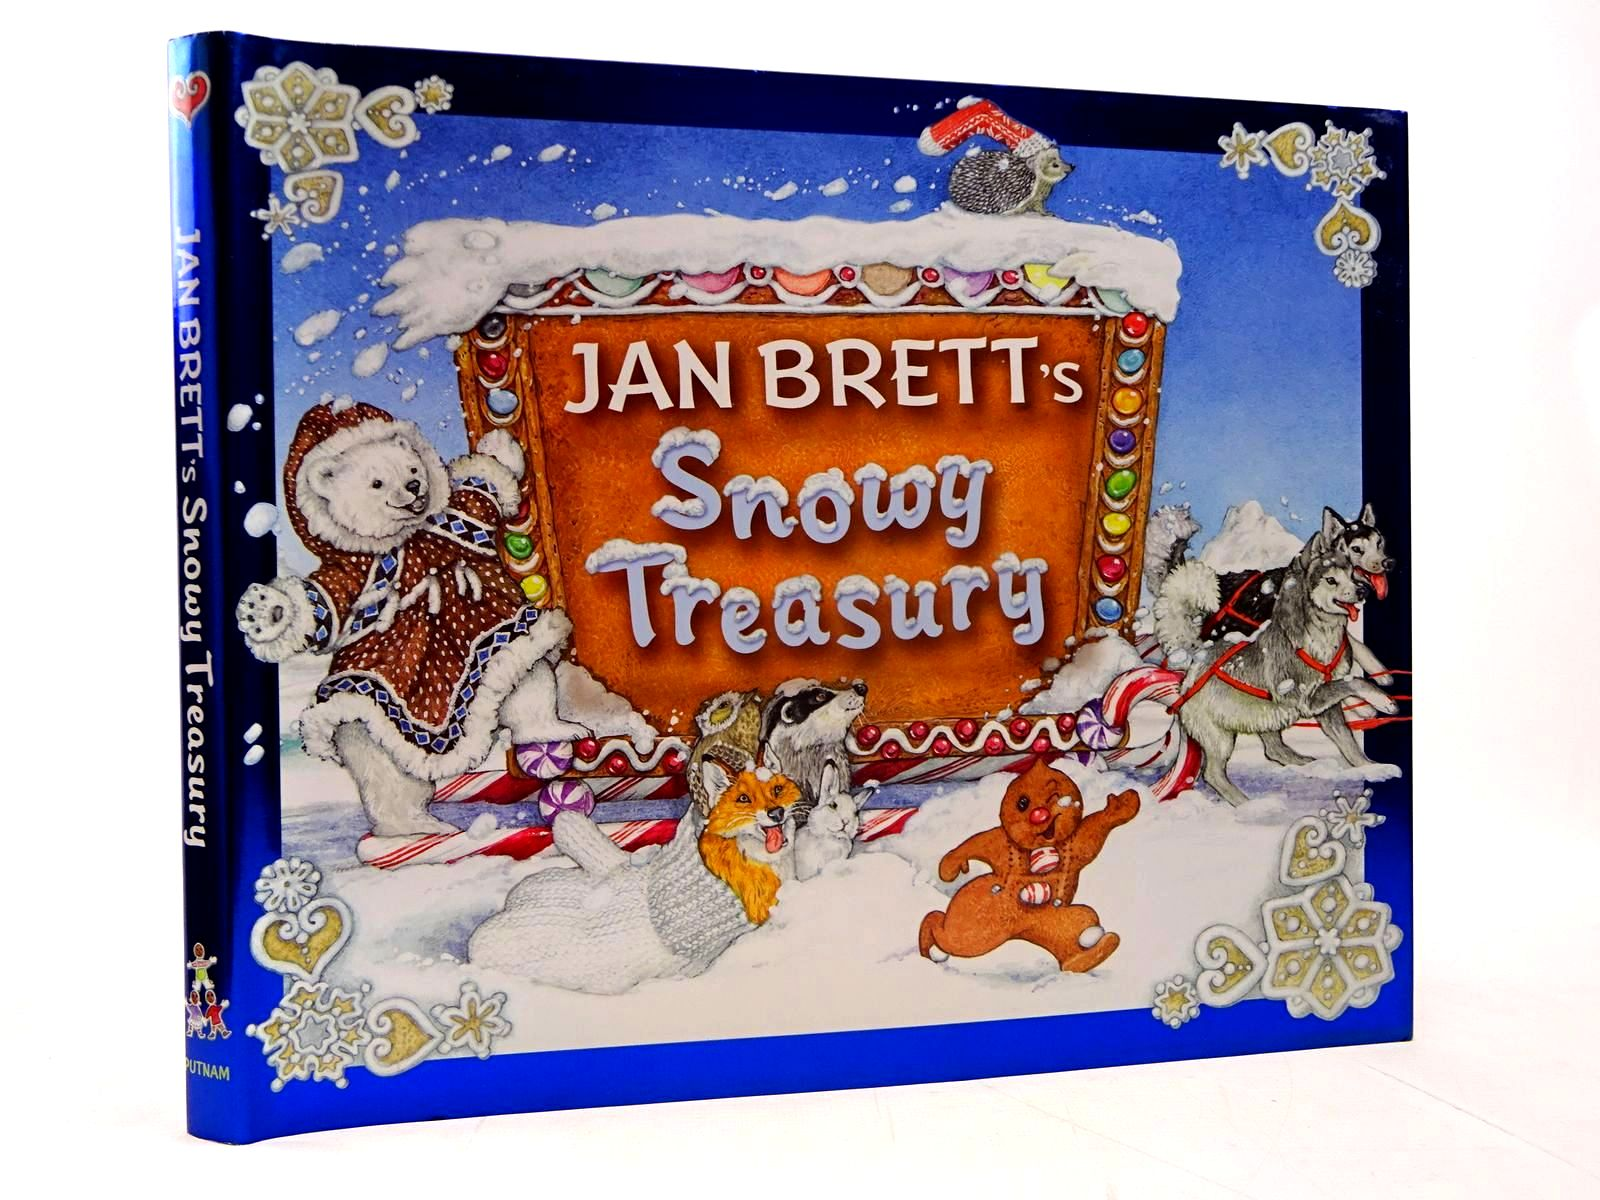 Photo of JAN BRETT'S SNOWY TREASURY written by Brett, Jan illustrated by Brett, Jan published by G.P. Putnam's Sons (STOCK CODE: 2130705)  for sale by Stella & Rose's Books